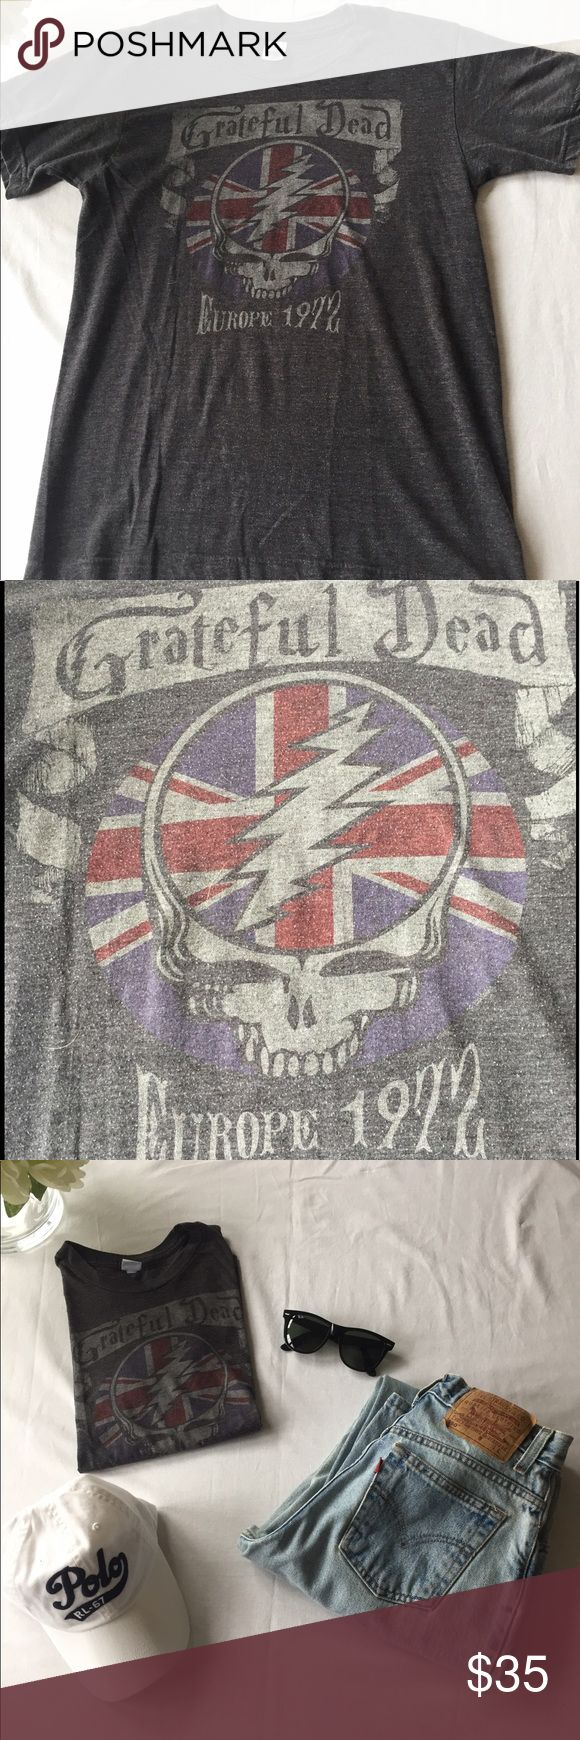 Rocker Tee Chic! Grateful Dead Europe 72' Vintage! Rocker Tee Chic! Grateful Dead Europe 72' Vintage! Size woman's small! Look rocker chic with jeans and some dark sunglasses! Tops Tees - Short Sleeve